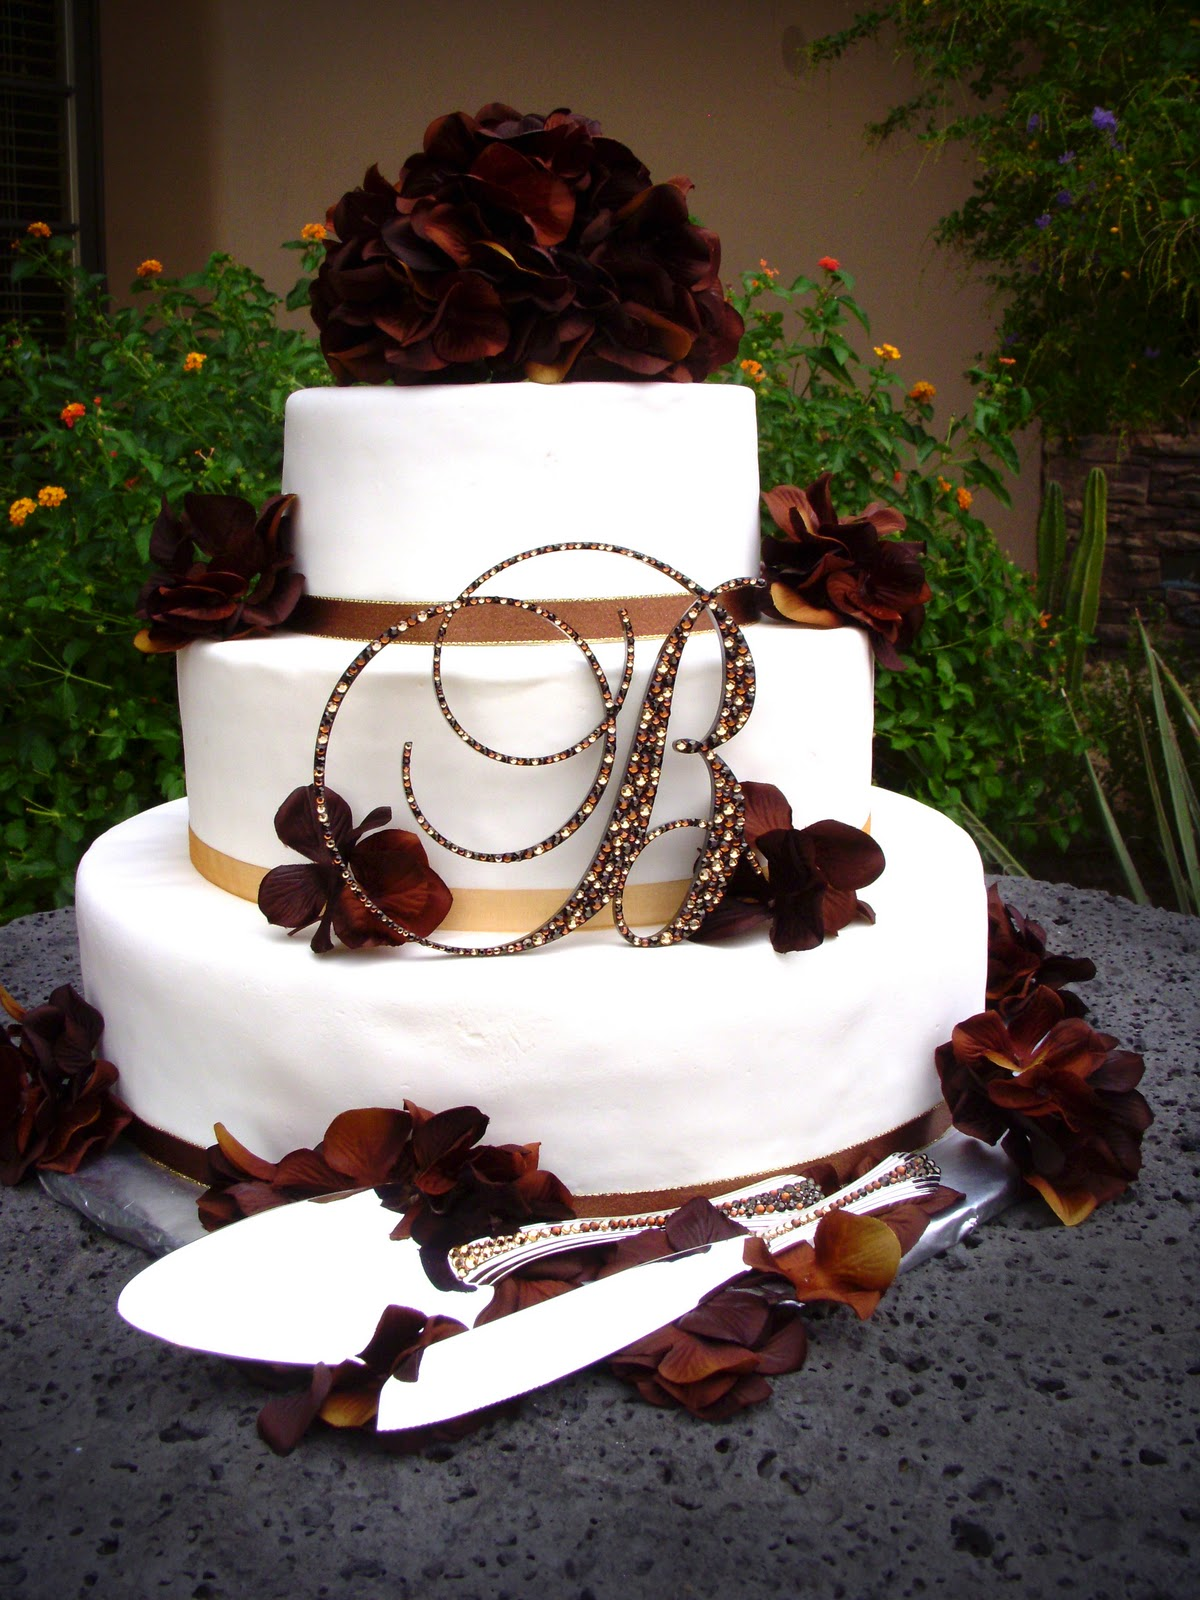 Confectionary Designs Couture Cake Jewelry